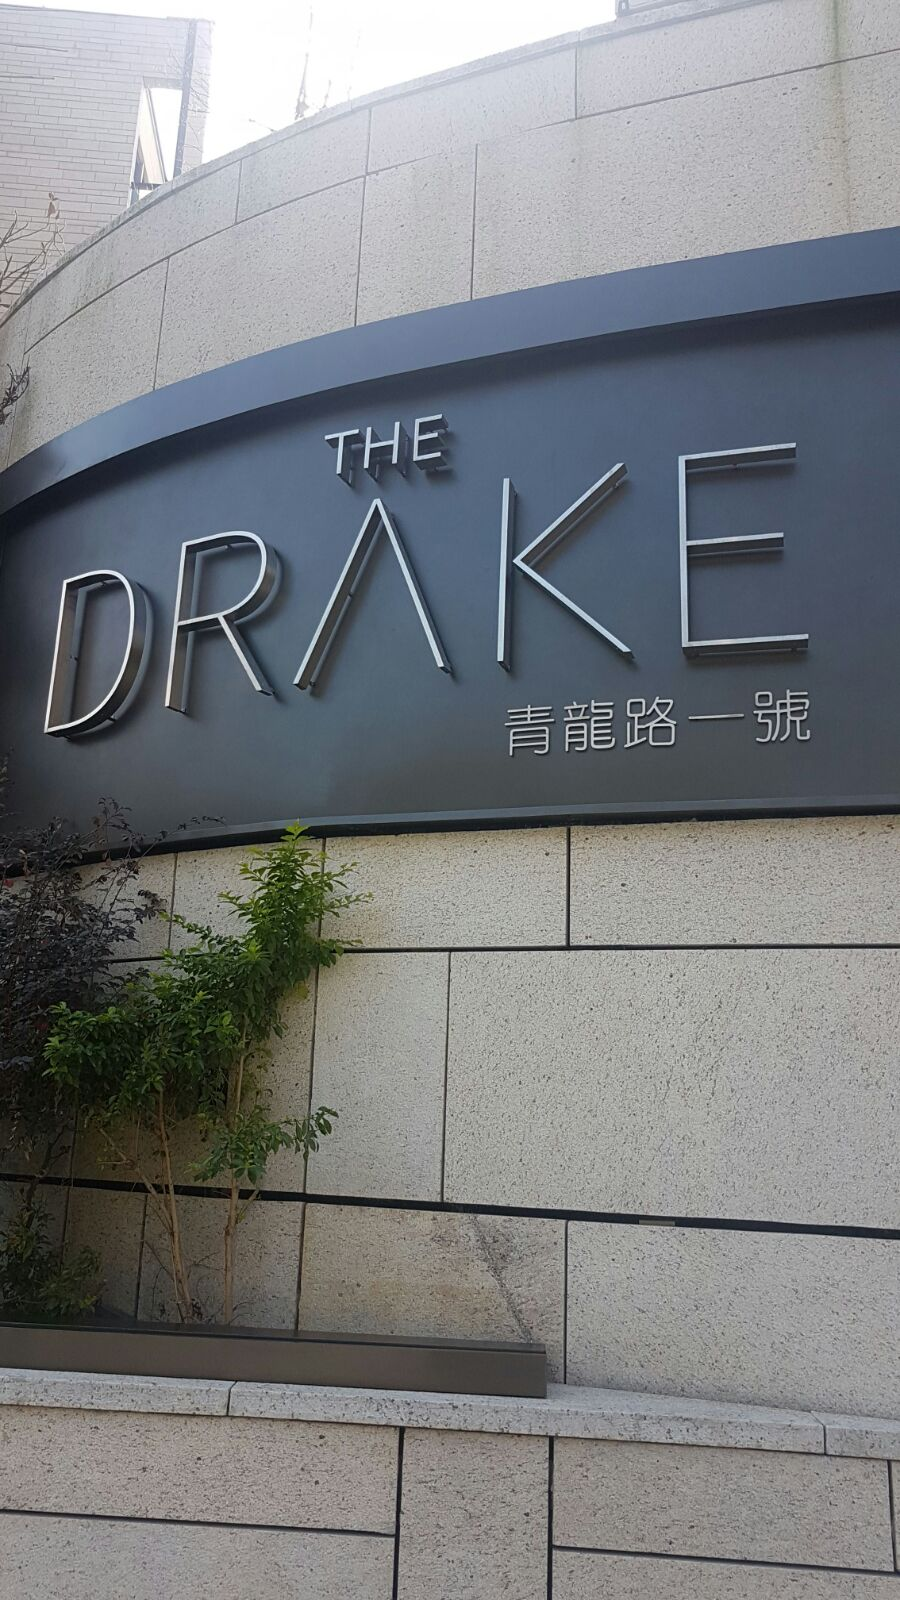 The Drak (Clubhouse)